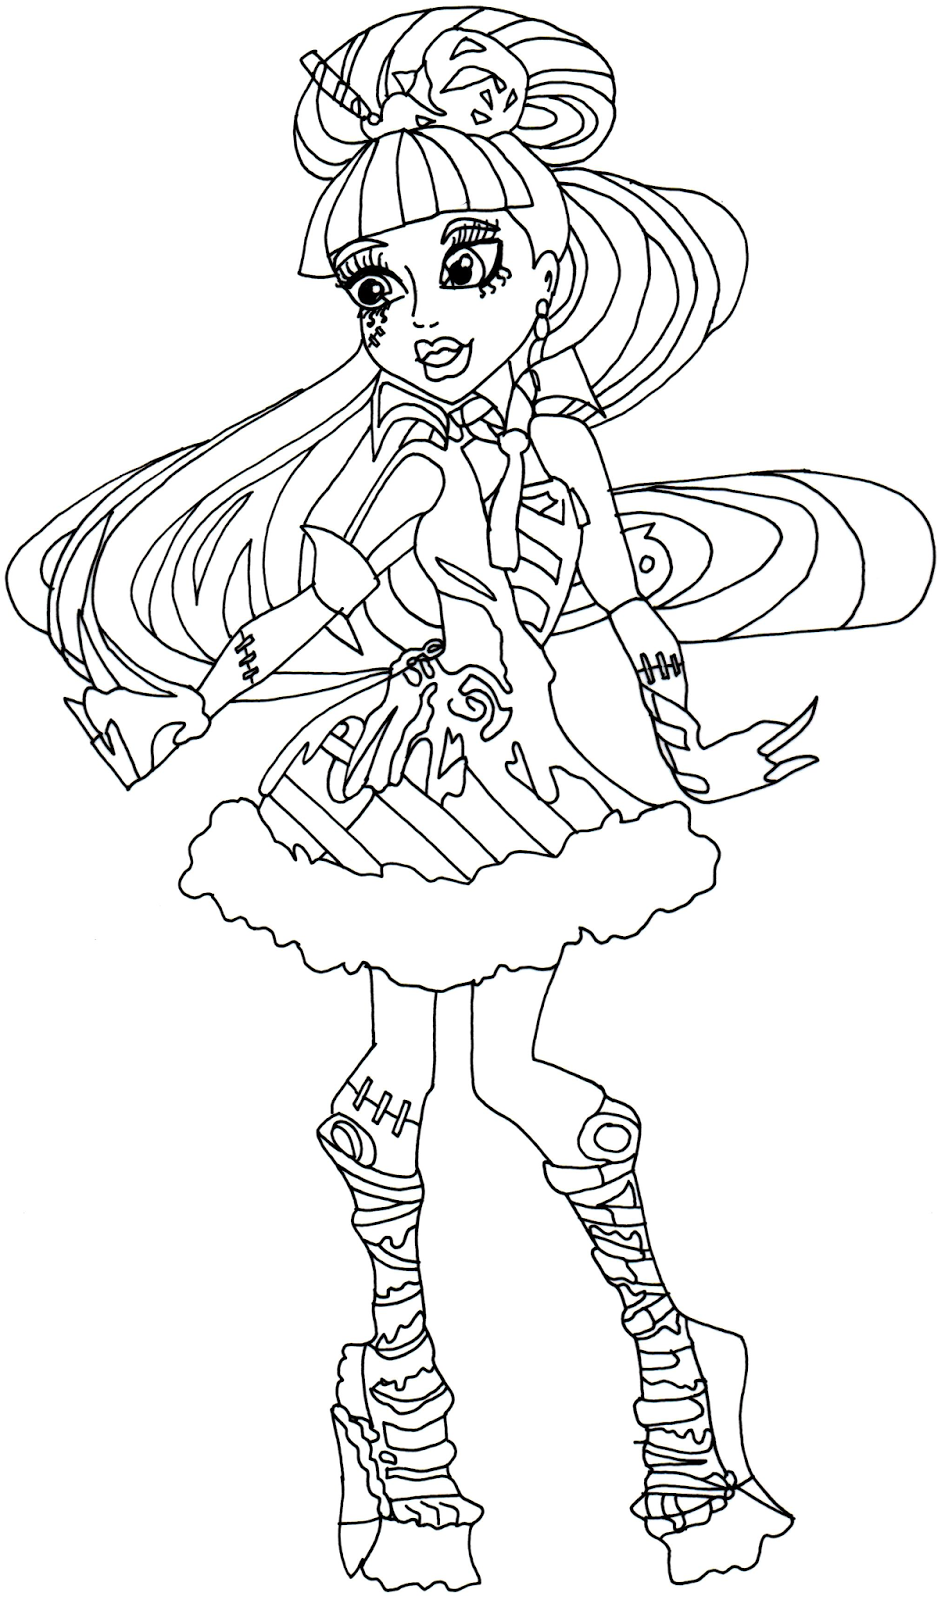 Free printable monster high coloring pages january 2014 for Monster high color pages free